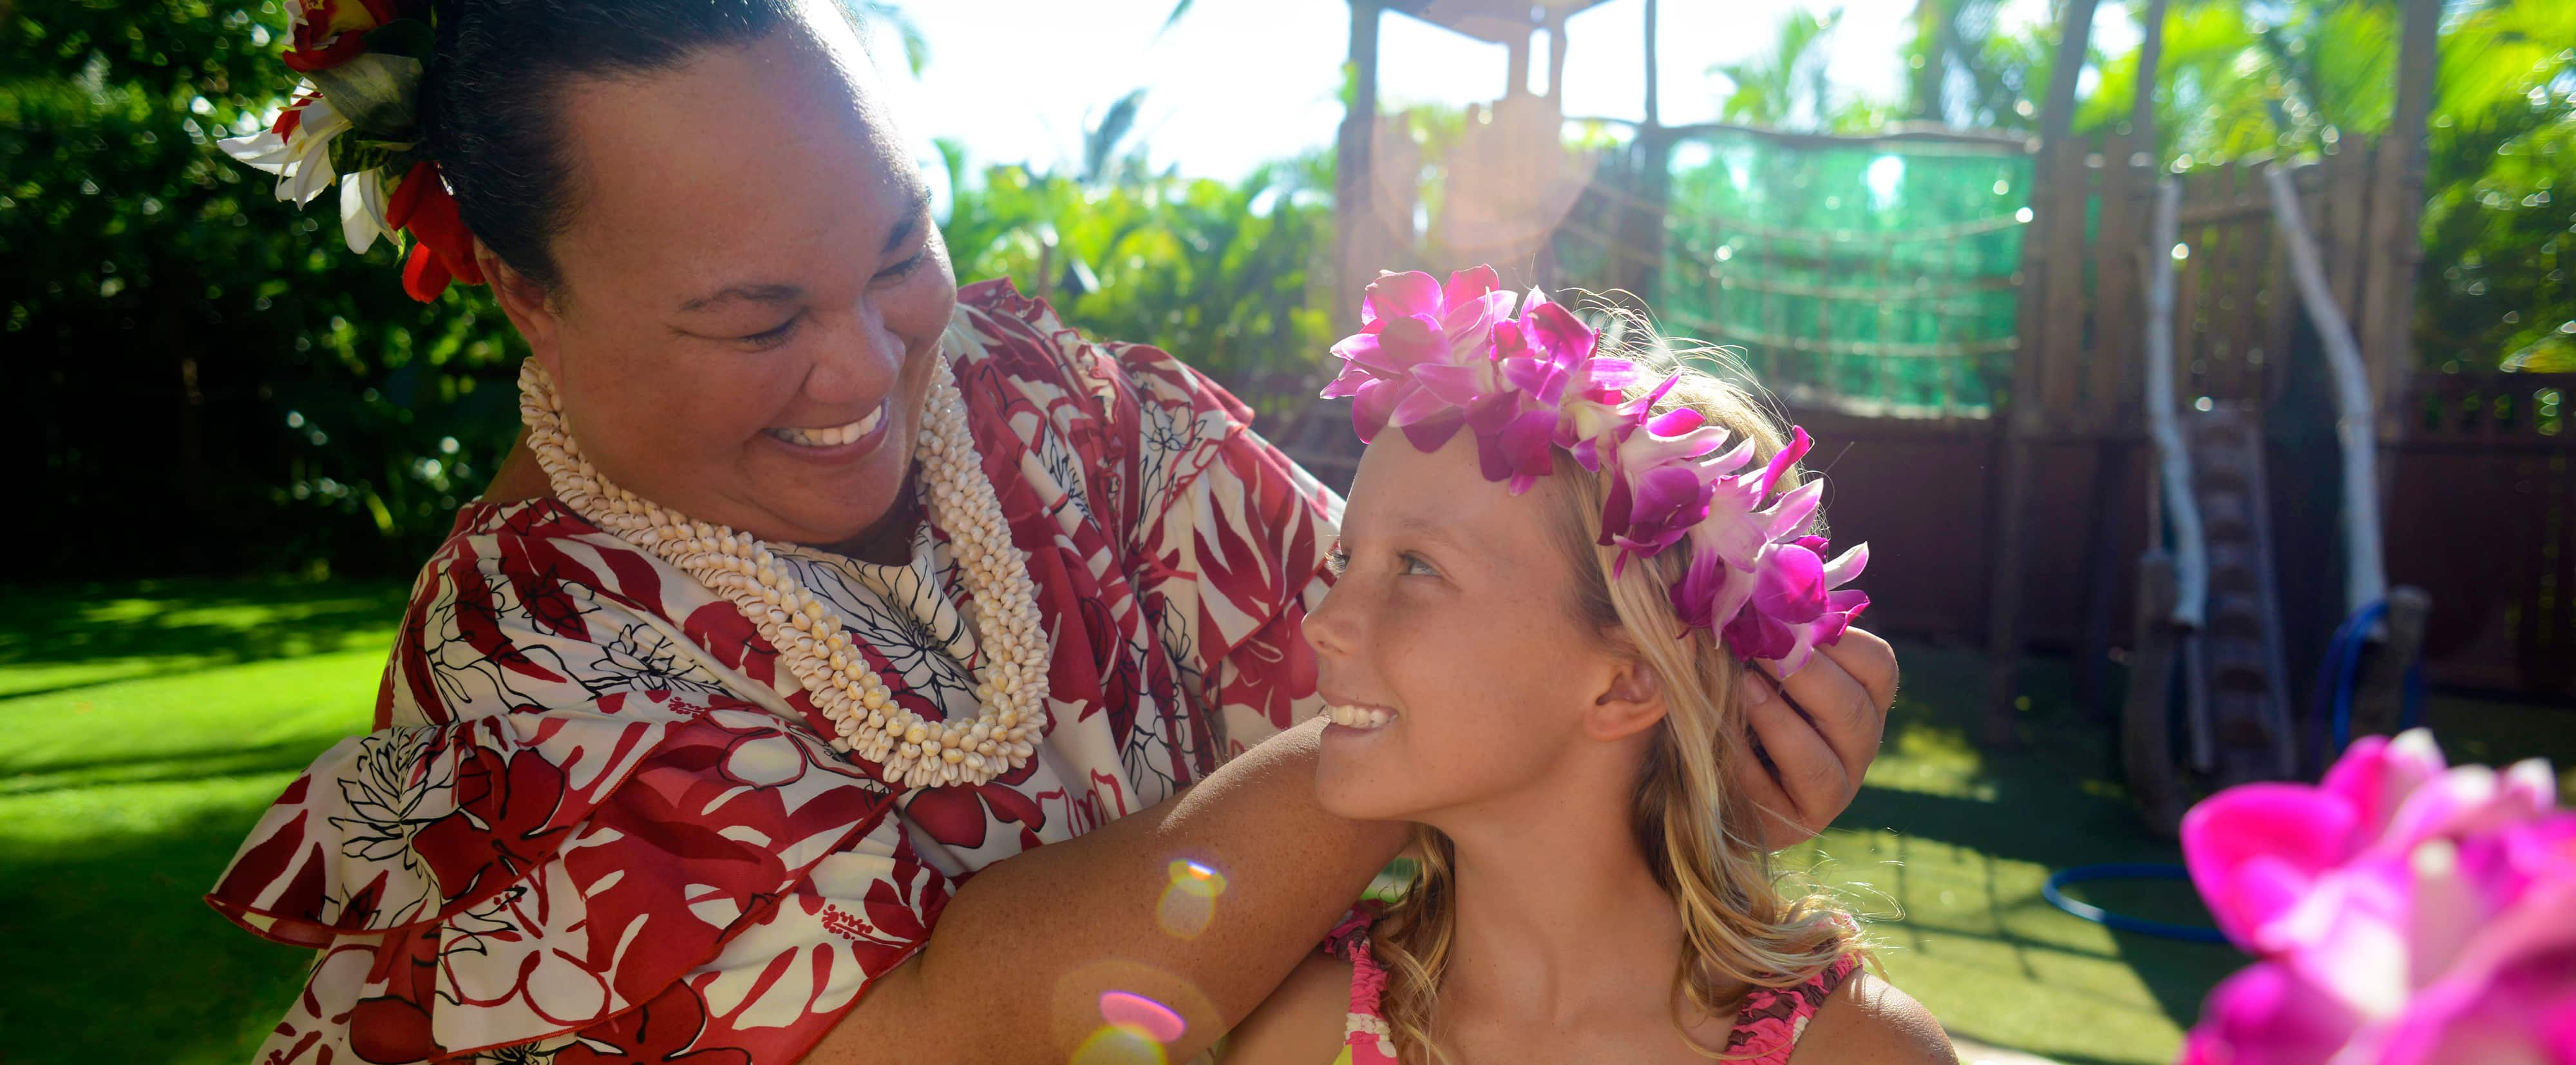 Auntys beach house kids club aulani hawaii resort spa a smiling woman in hawaiian garb puts a fuchsia orchid wreath on a young girls head izmirmasajfo